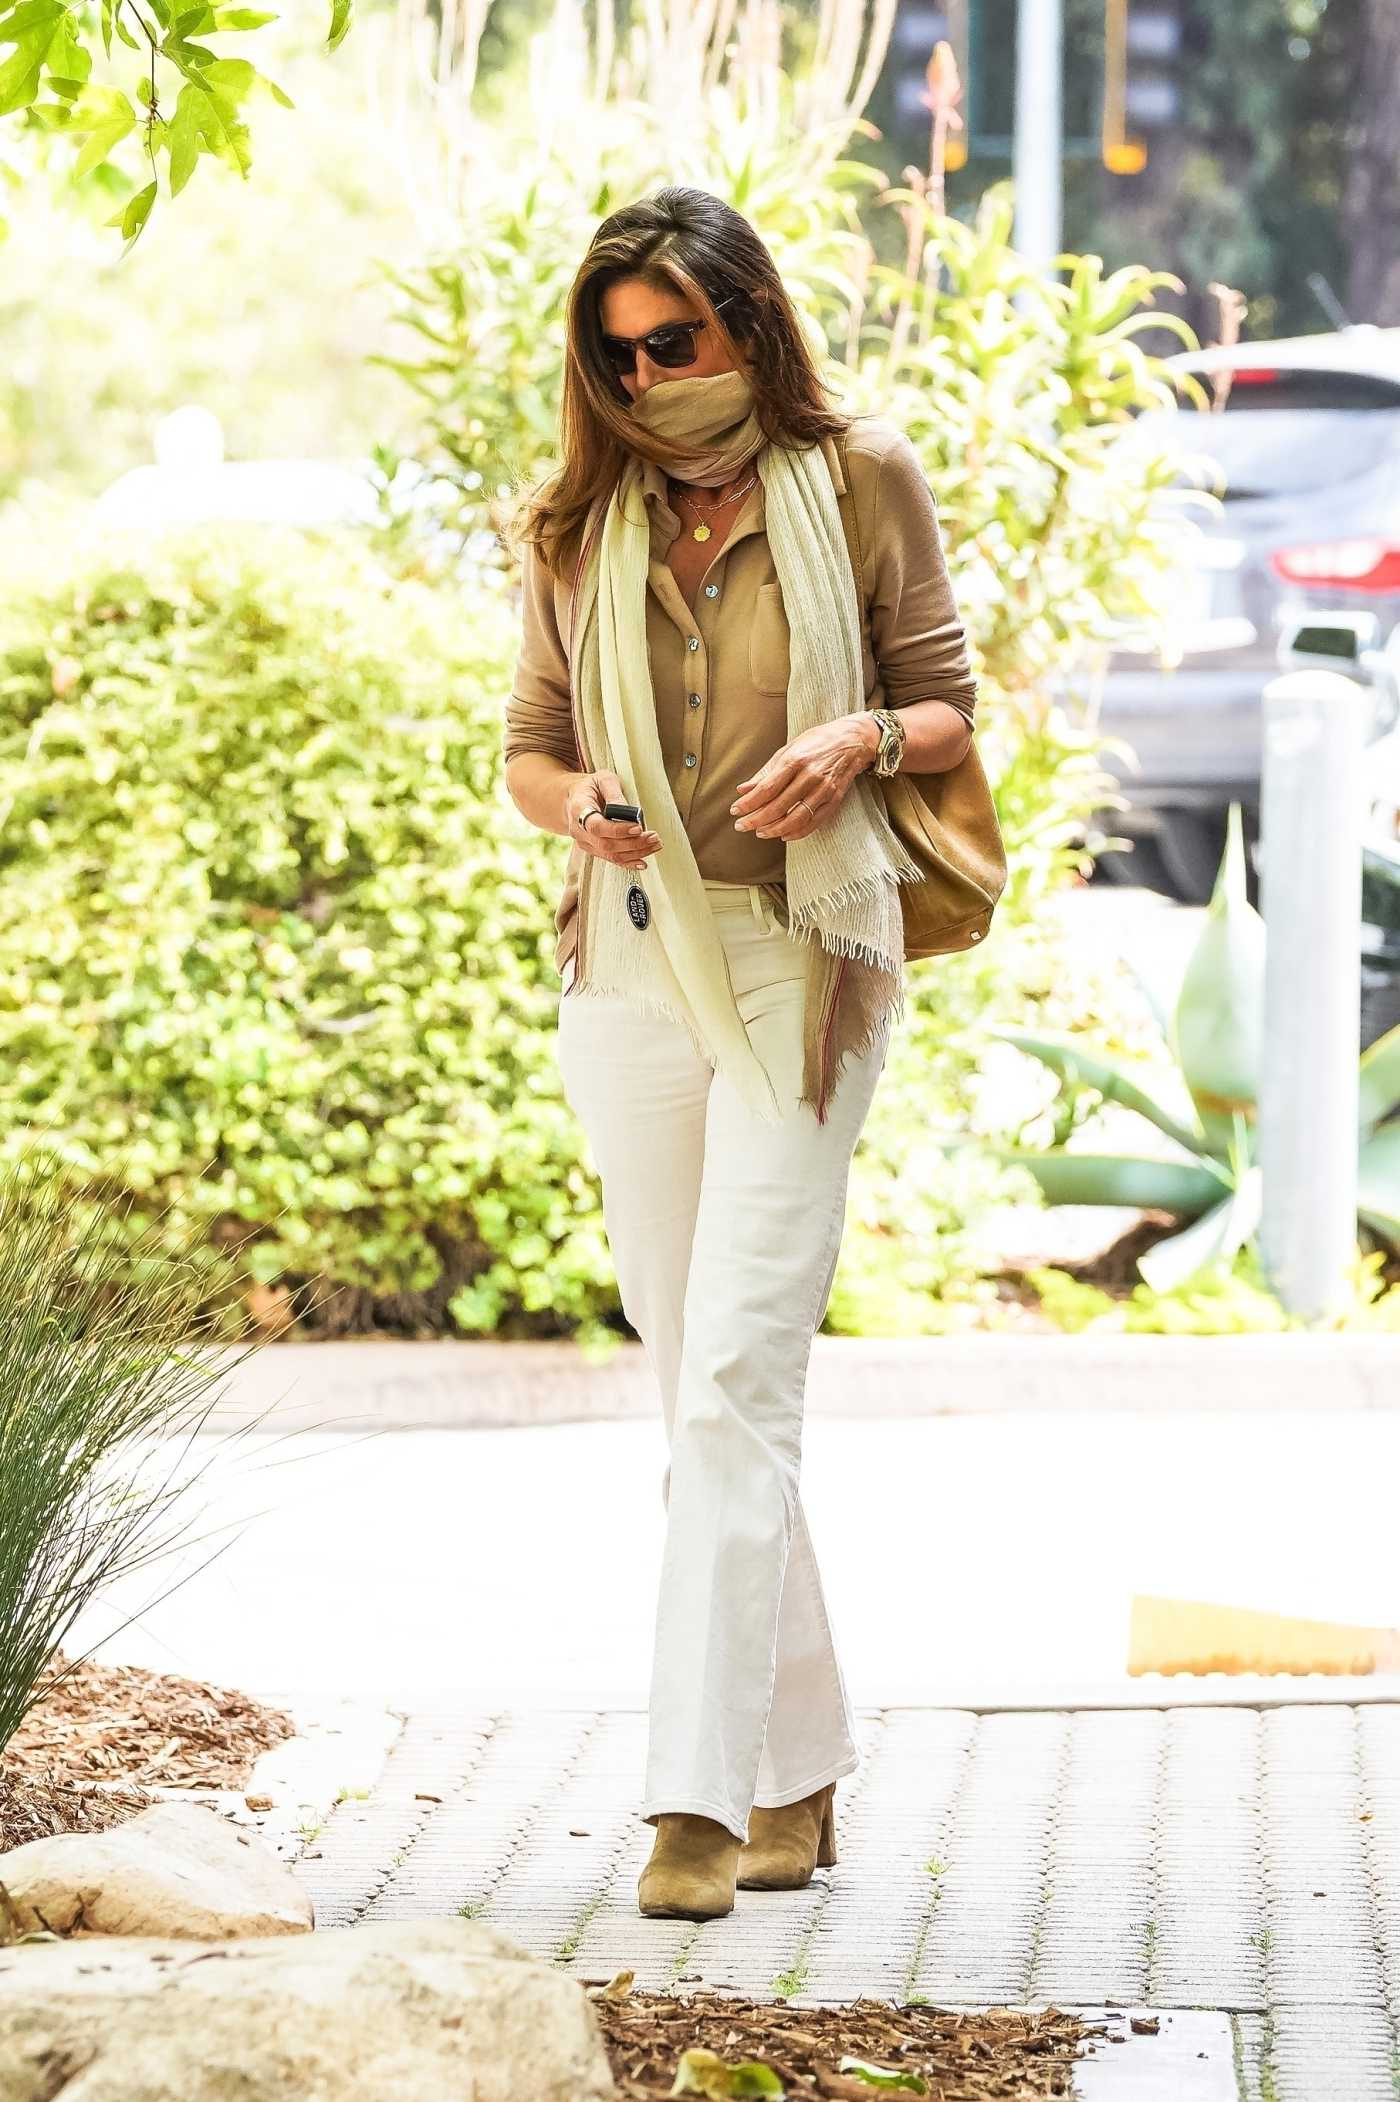 Cindy Crawford in a White Jeans Makes a Quick Visit to Cafe Habana in Malibu 04/13/2021